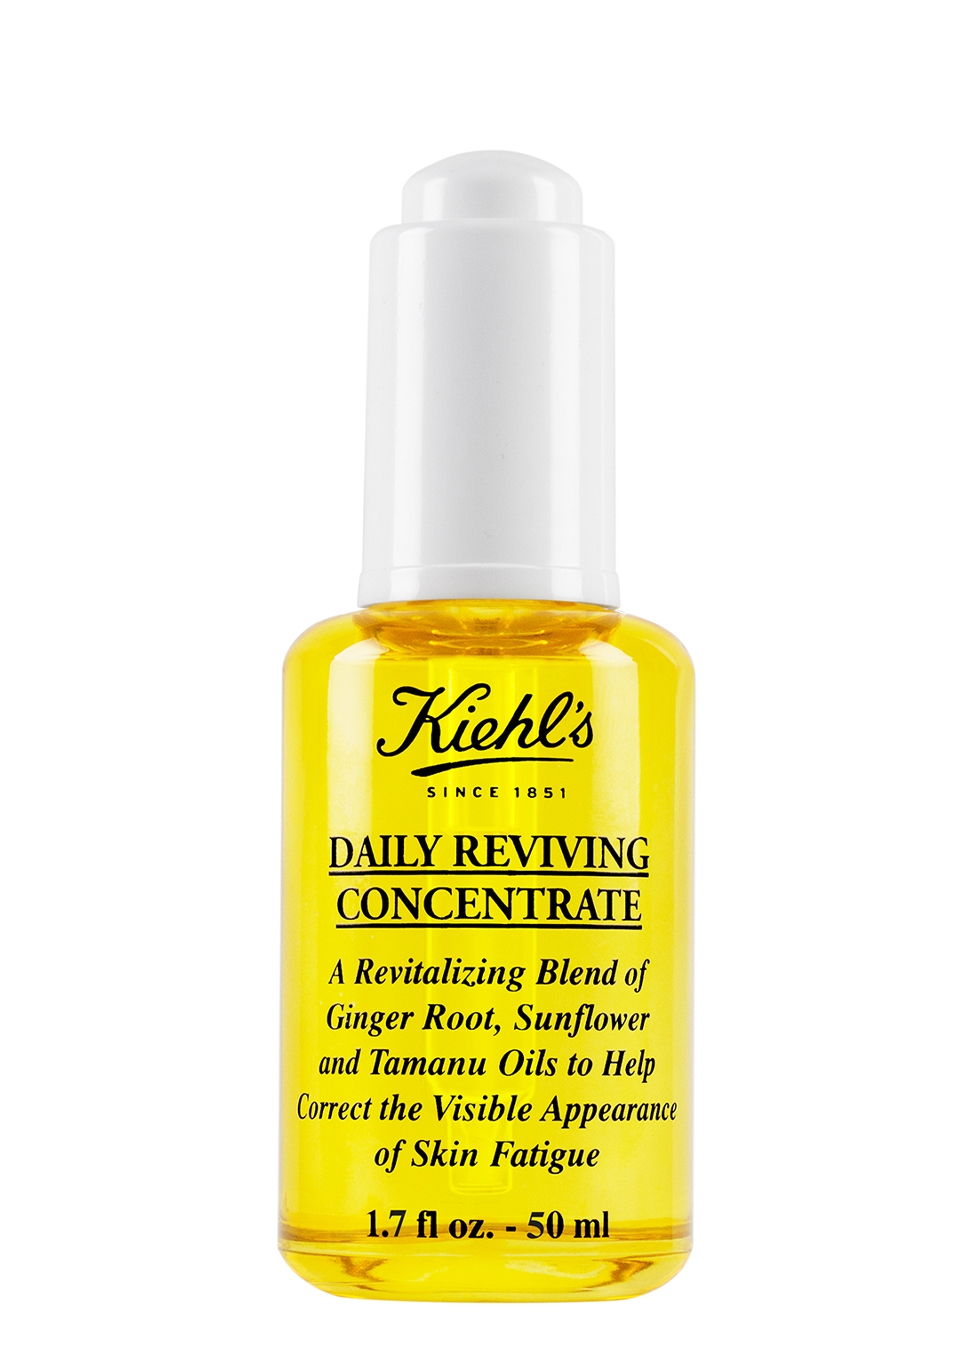 Daily Reviving Concentrate 50ml